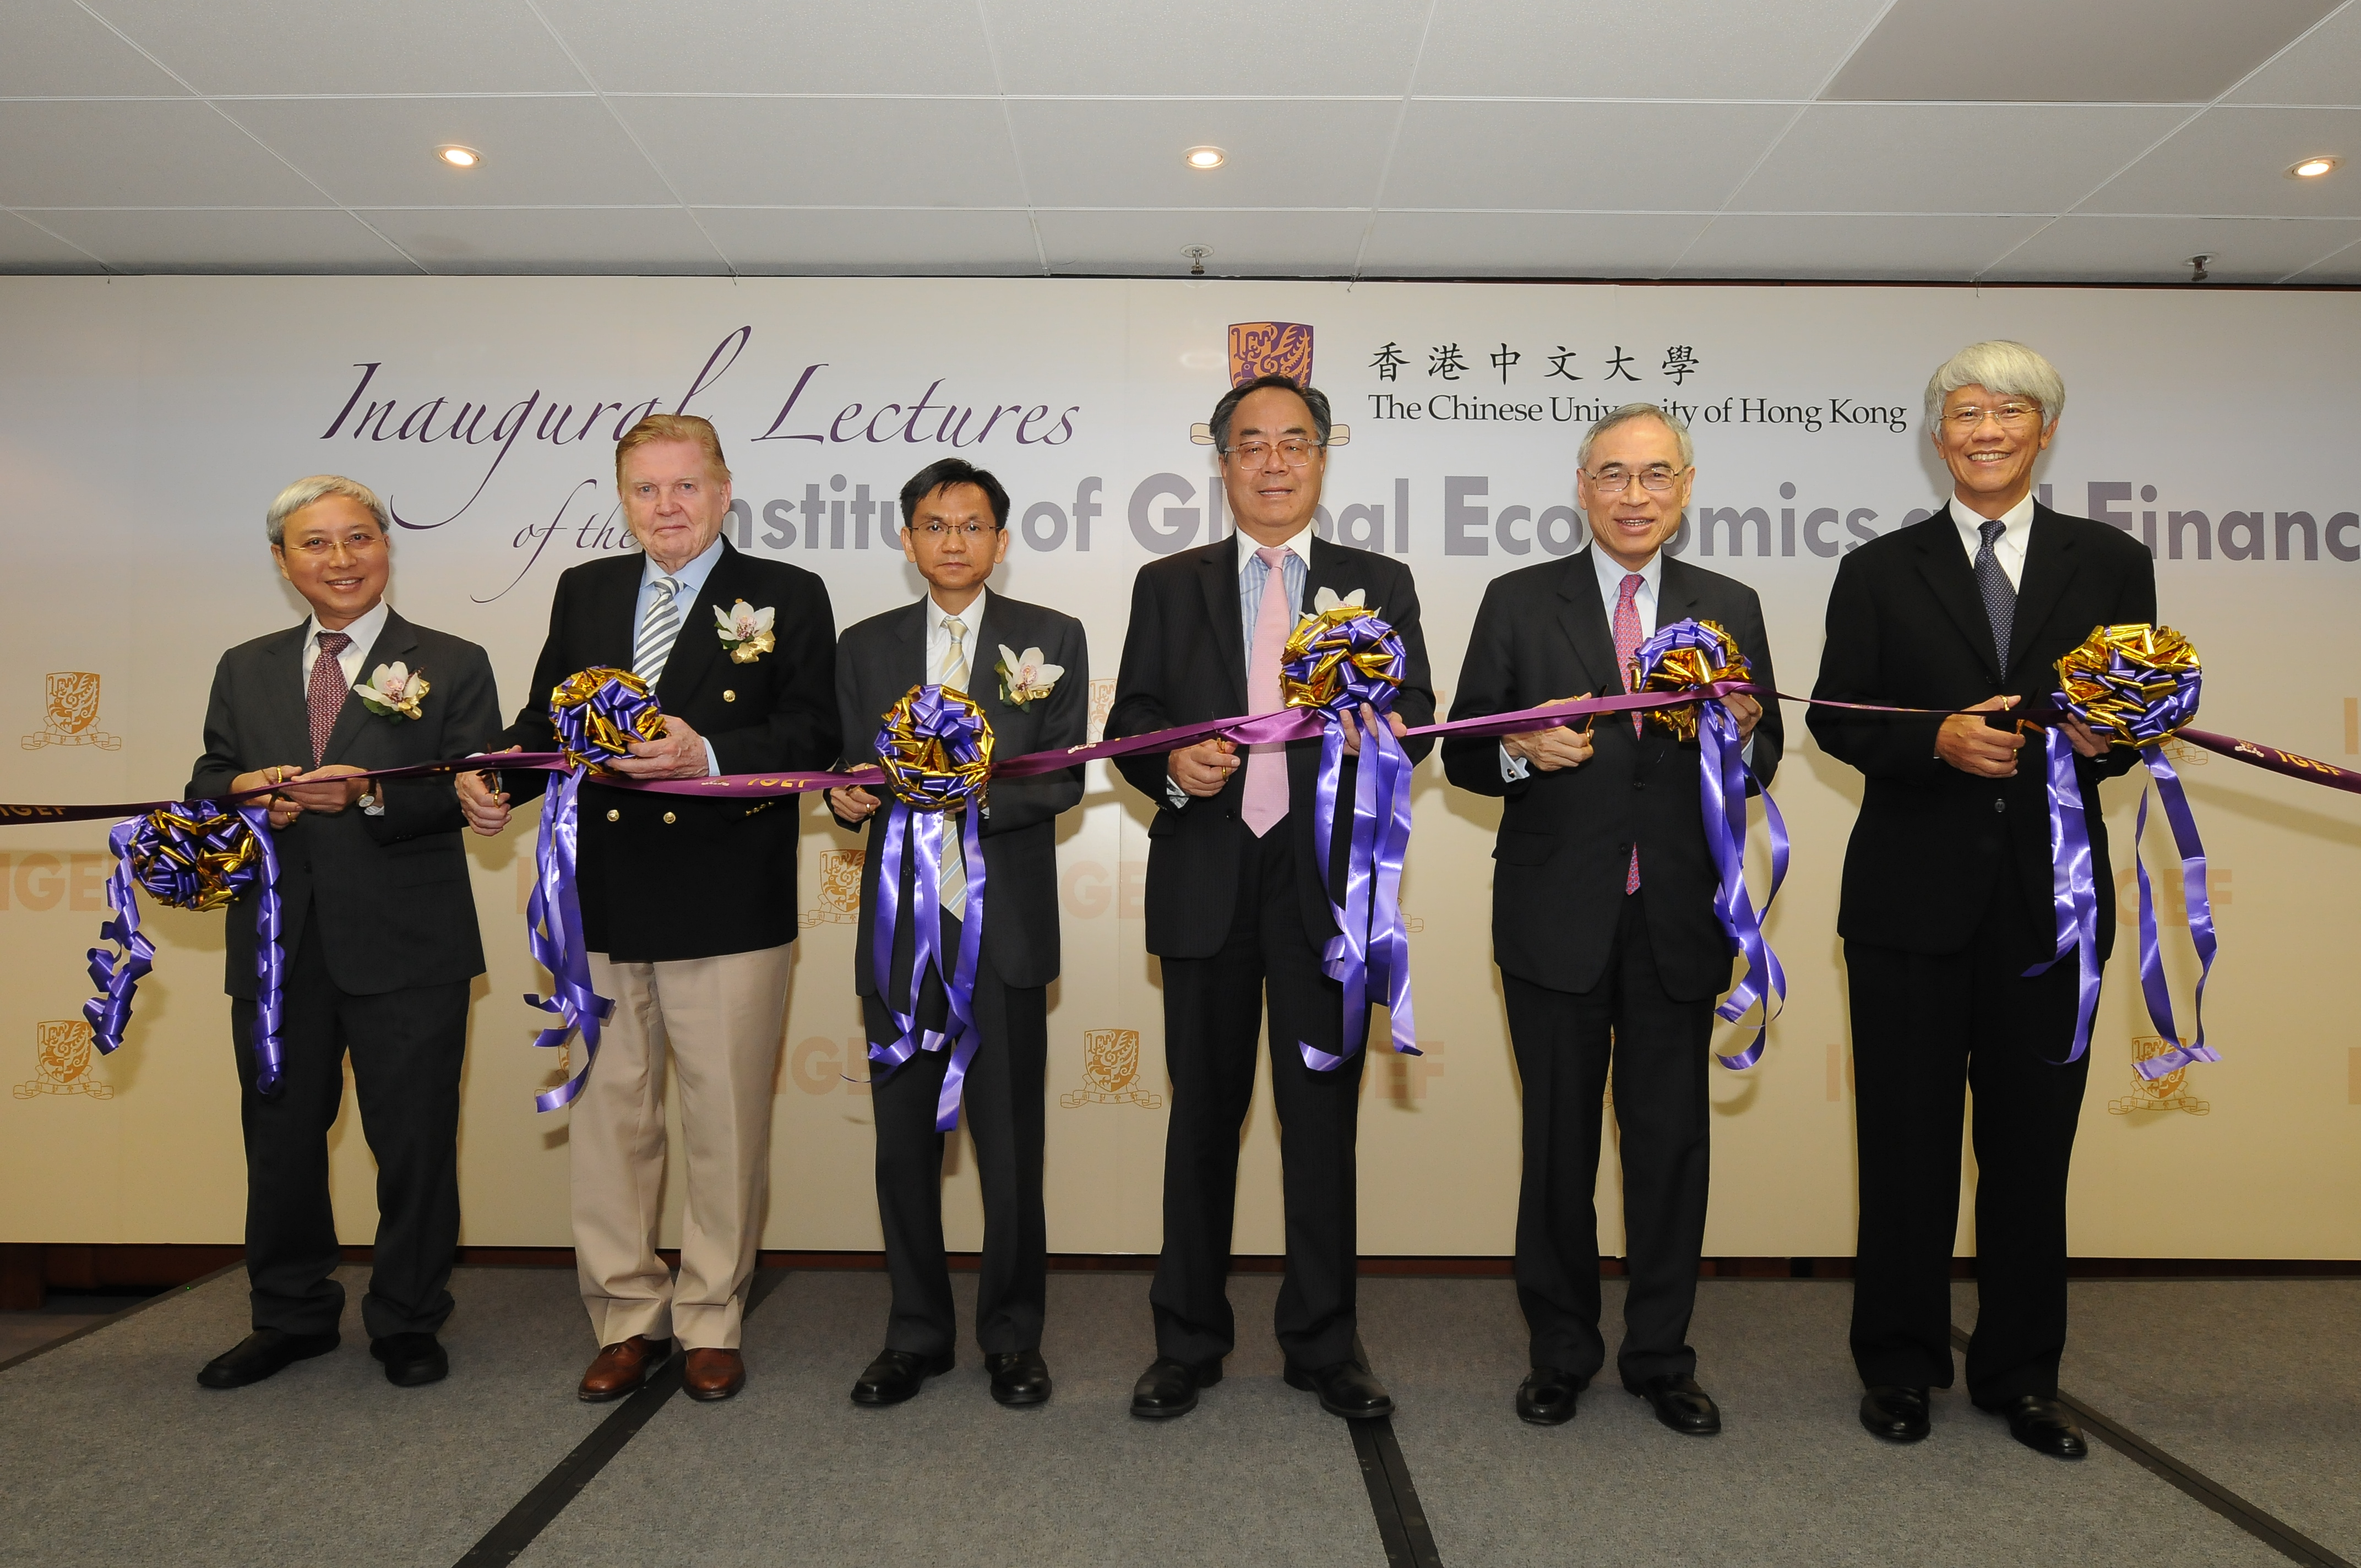 (From left) Prof. Liu Pak-wai, Director of the Institute of Global Economics and Finance, CUHK; Prof. Robert A. Mundell, 1999 Nobel Laureate in Economic Sciences and Distinguished Professor-at-Large, CUHK; Mr. Mak Nak Keung, Chief Economist of Sun Hung Kai Properties Ltd.; Dr. Di Weiping, Chief Executive of the Hong Kong Branch of China Development Bank Corporation; Prof. Lawrence J. Lau, Vice-Chancellor and Ralph and Claire Landau Professor of Economics, CUHK; and Prof. Joseph Yam, Distinguished Research Fellow of Institute of Global Economics and Finance, CUHK officiate at the Inauguration Ceremony of the Institute of Global Economics and Finance.